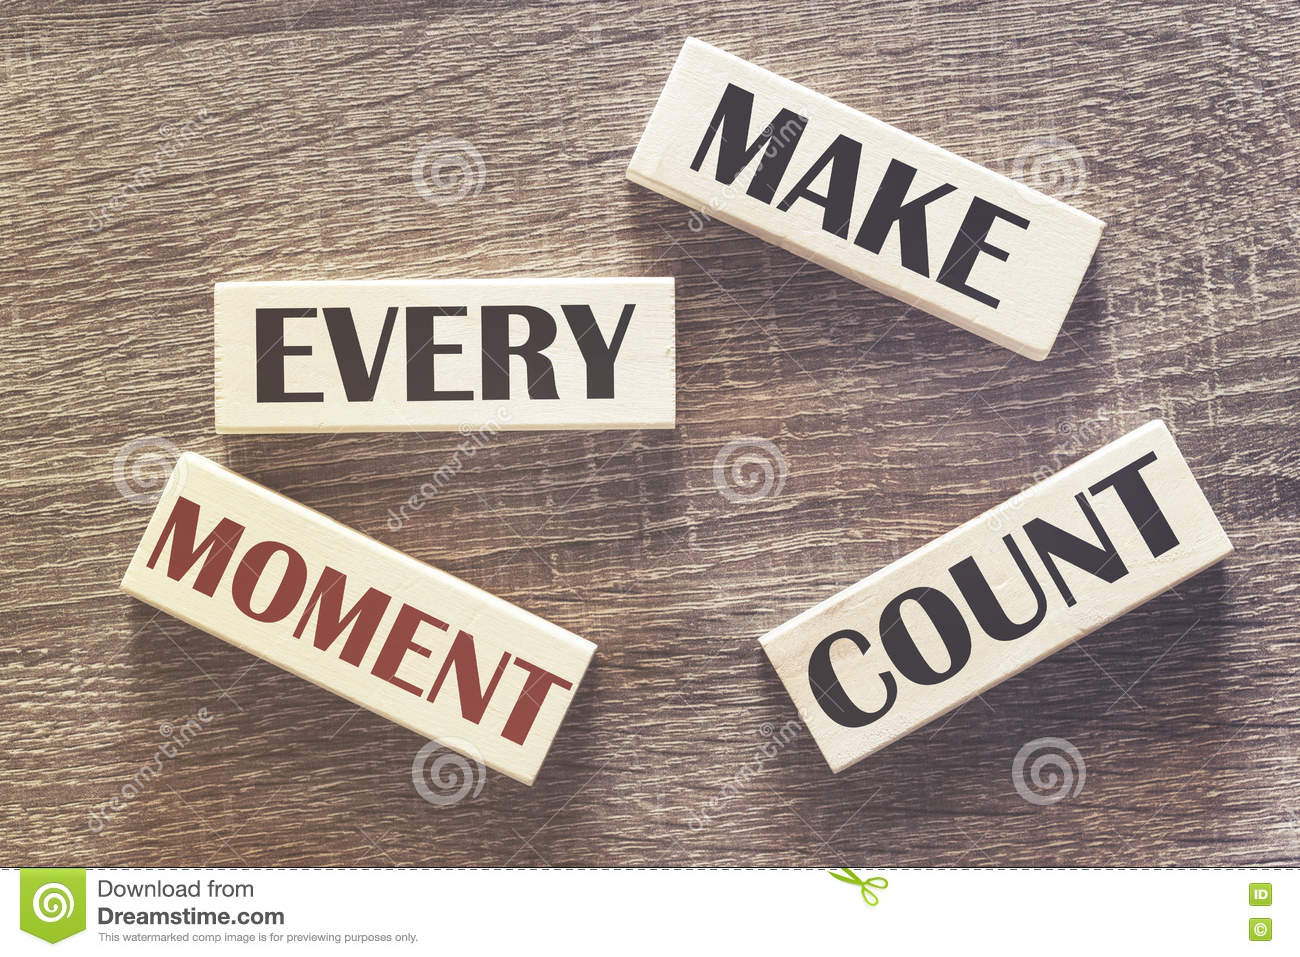 Every Moment Counts Quotes: Make Every Moment Count Motivational Message Stock Photo